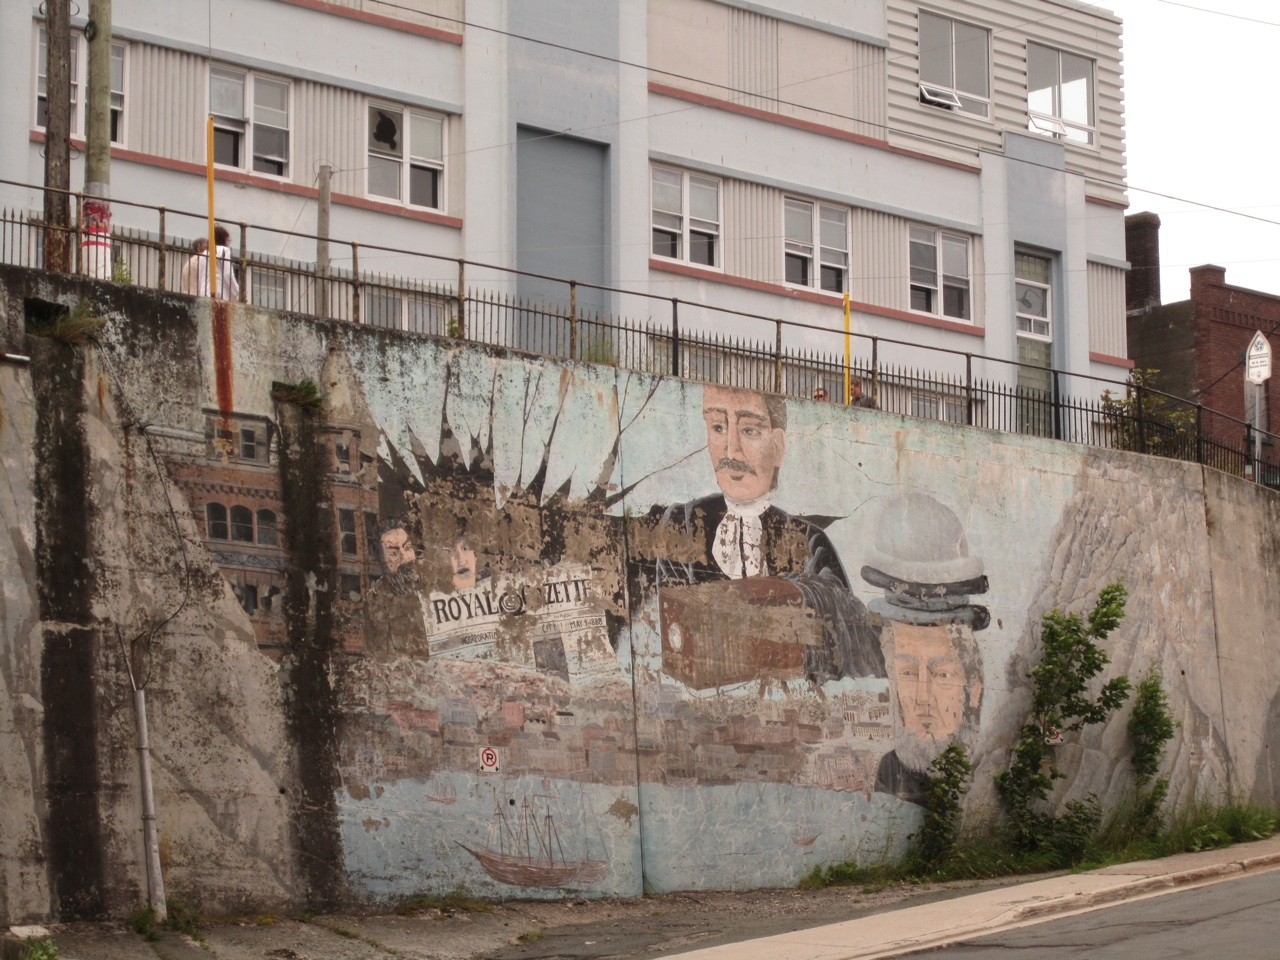 Murals Are Plentiful In St. John's